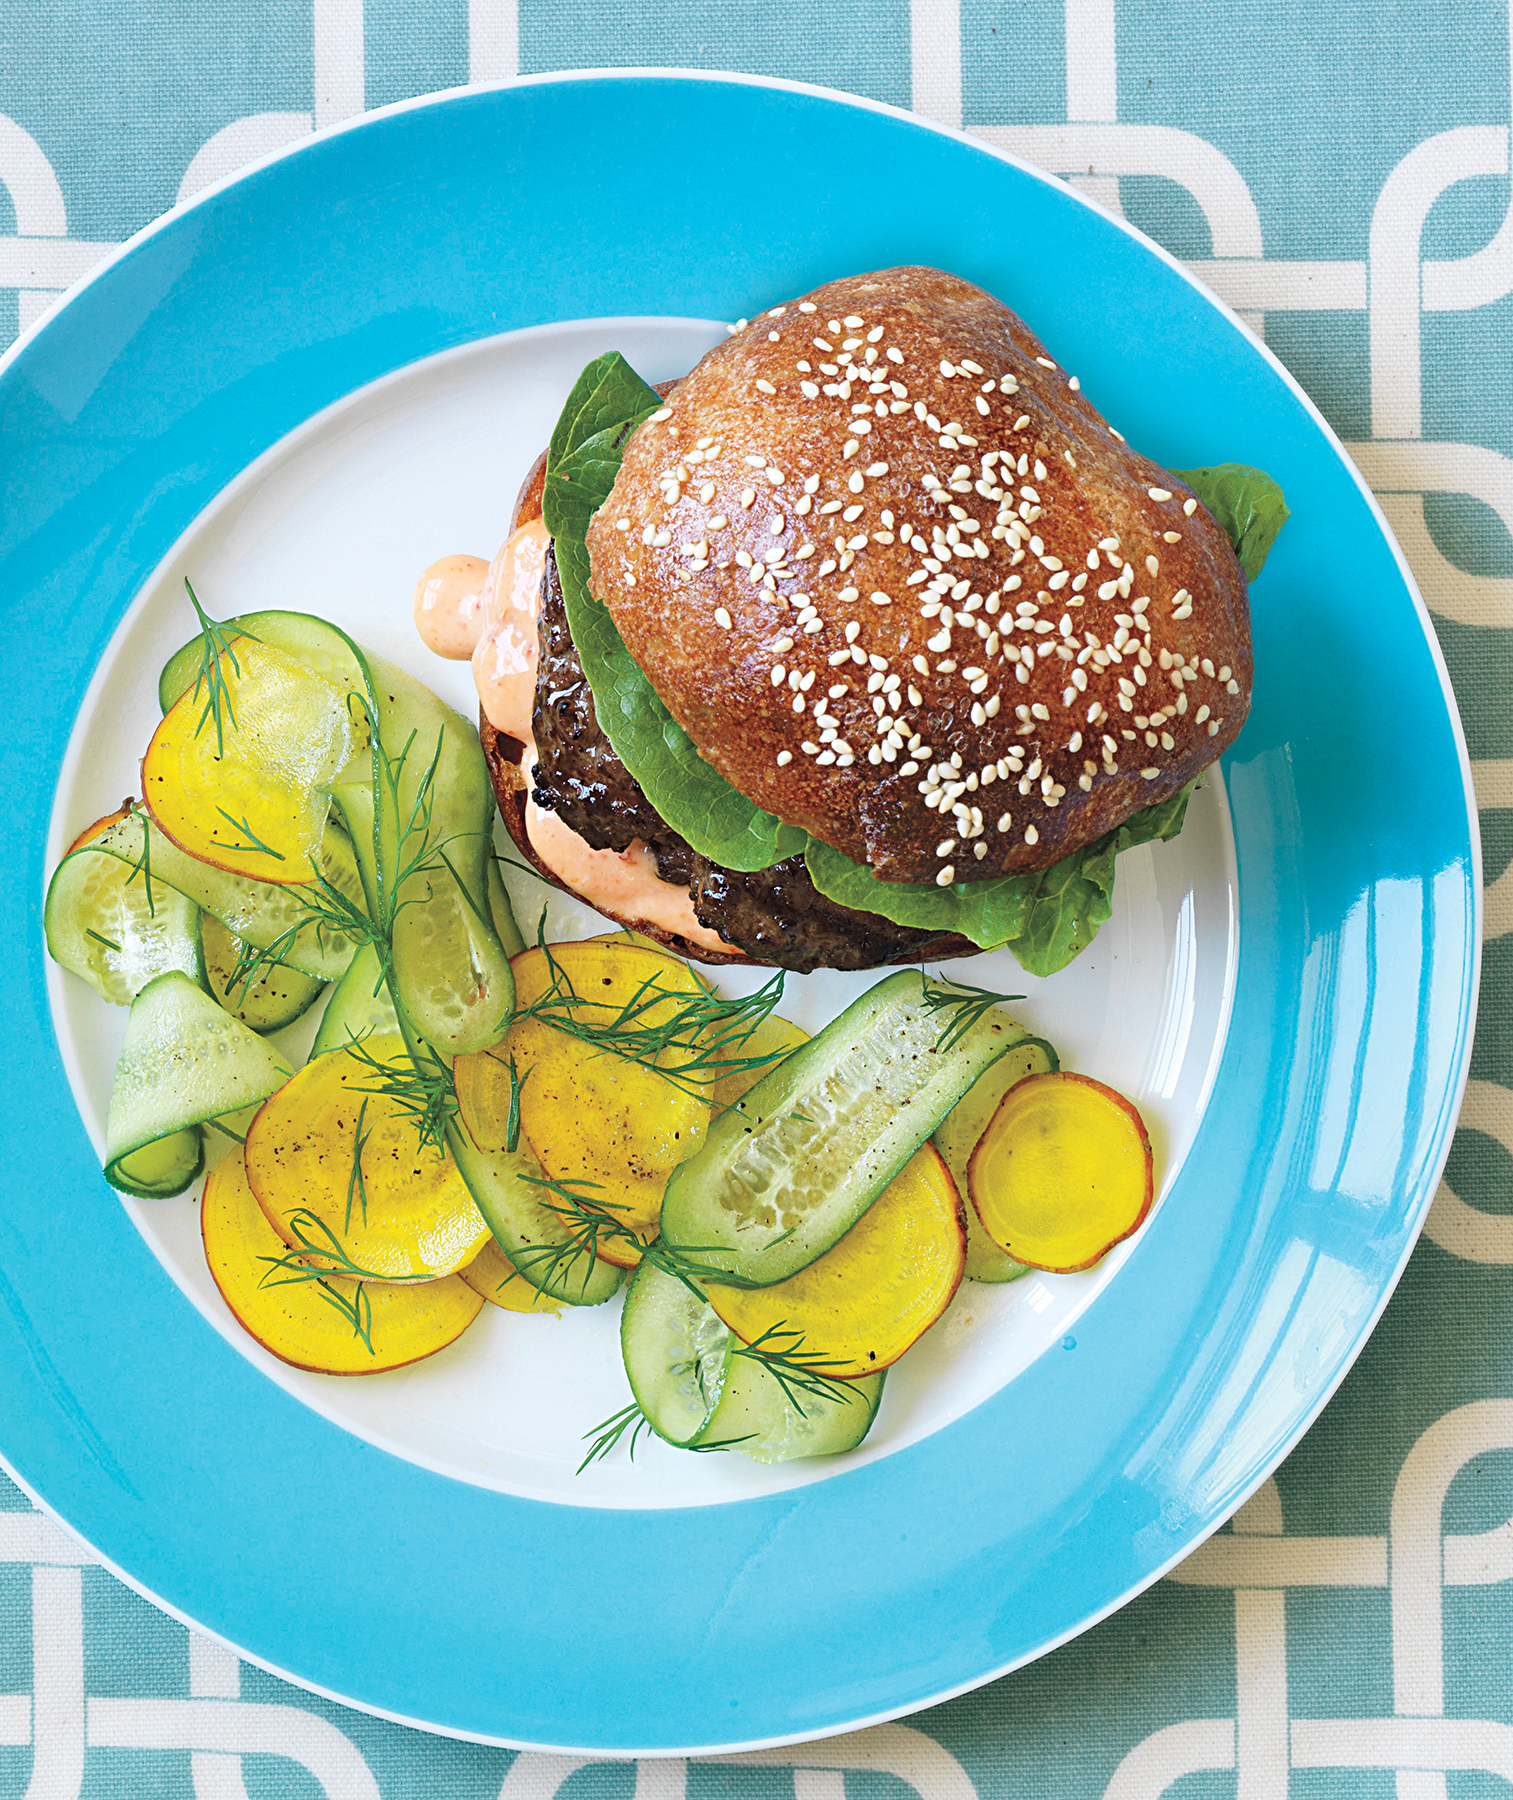 Spiced Beef Burger With Shaved Cucumber and Beet Salad